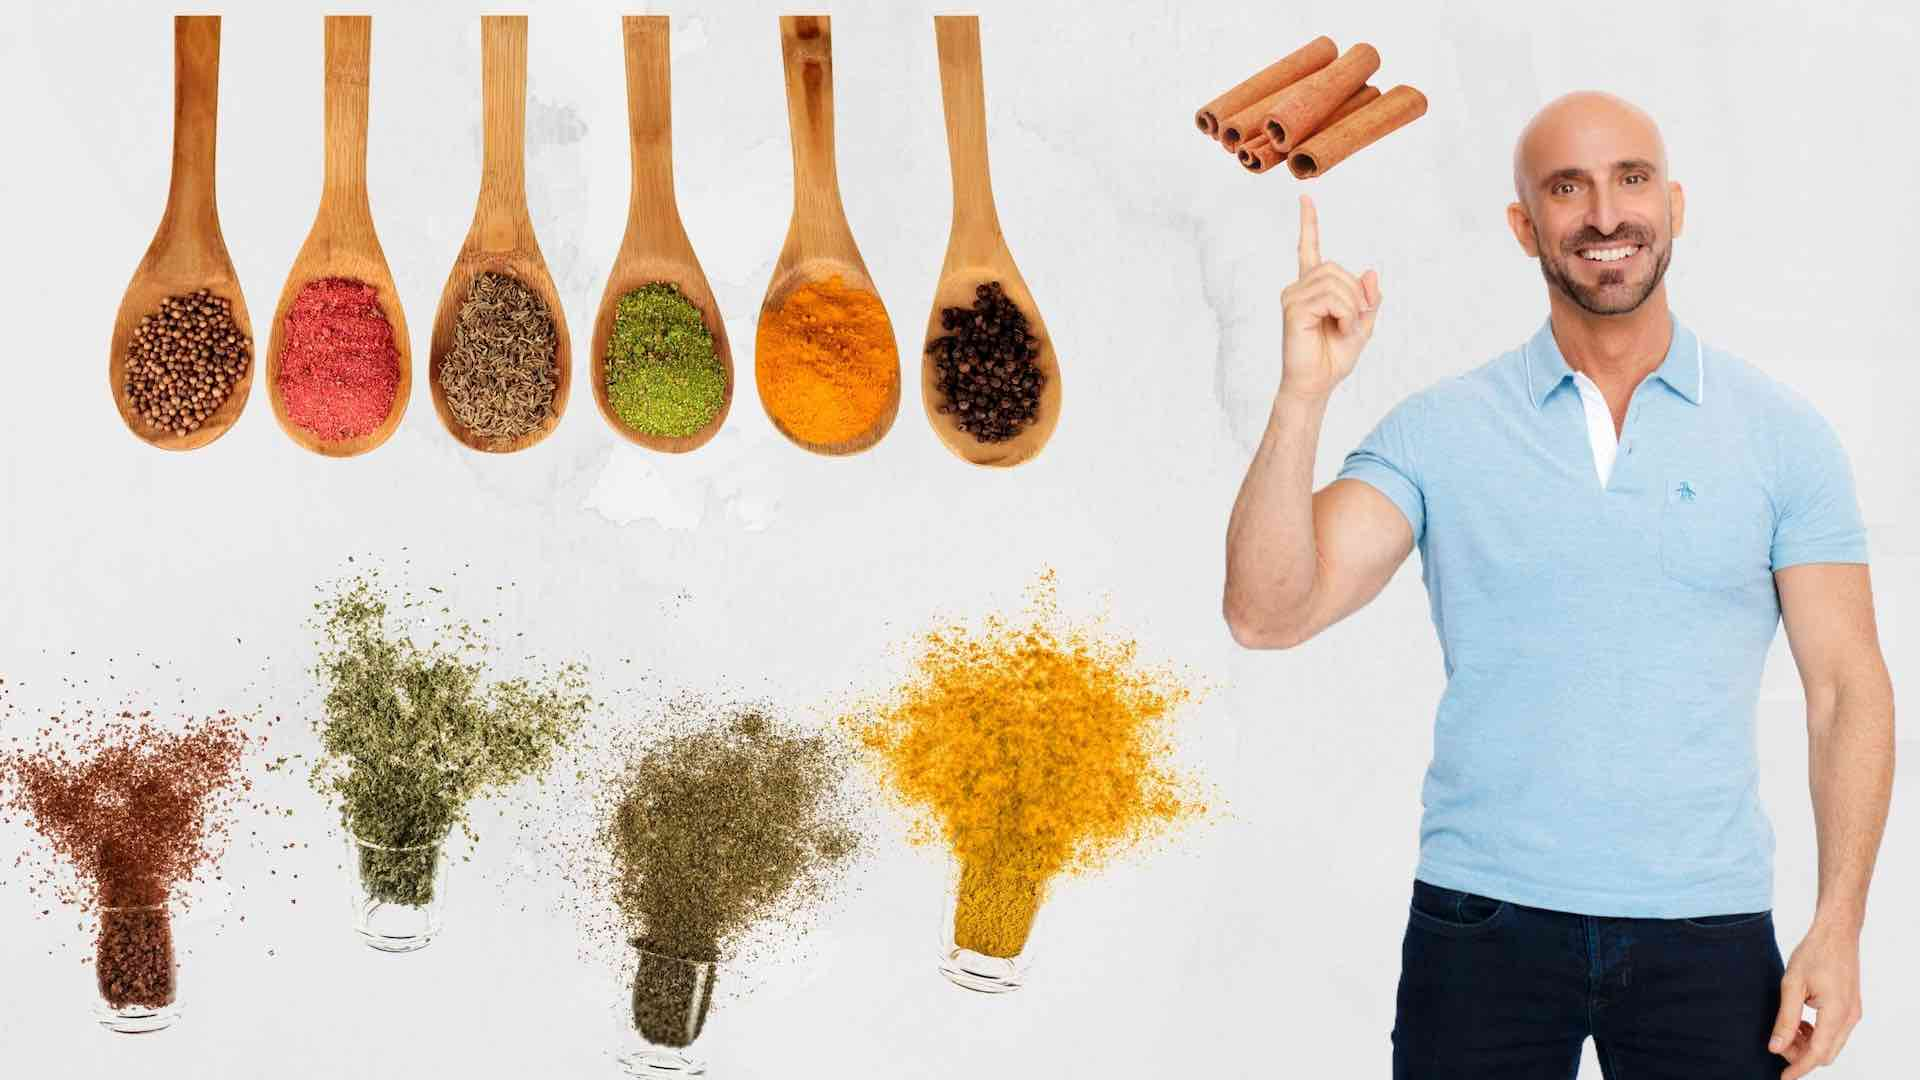 6 Herbs & Spices High in Antioxidants (+ 2 Tasty Recipes)